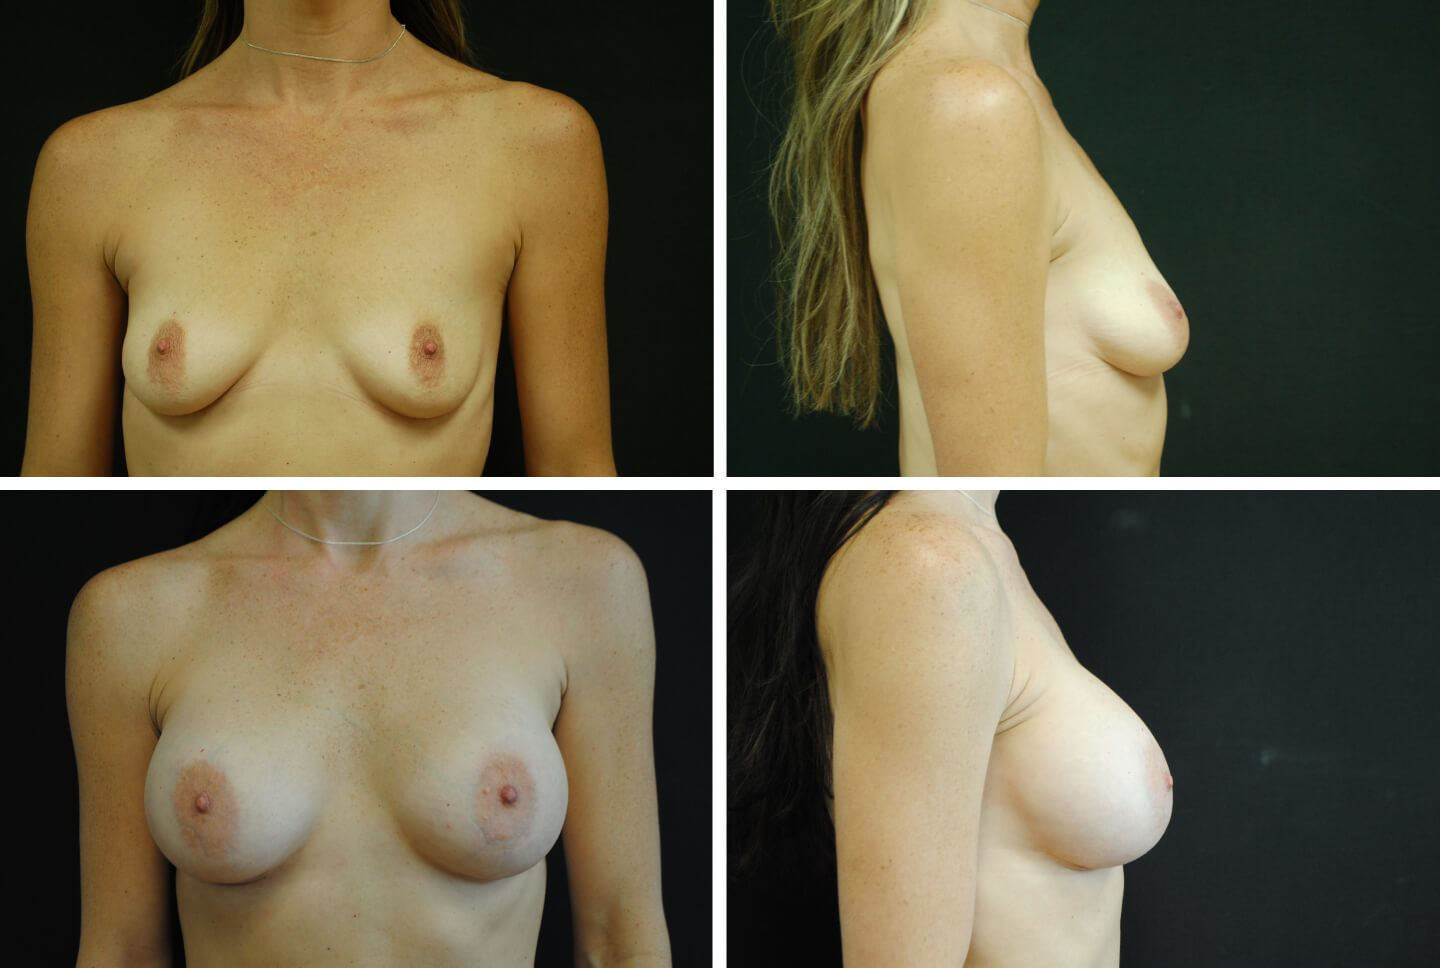 jan-case-48743-breast-aug-1440x968